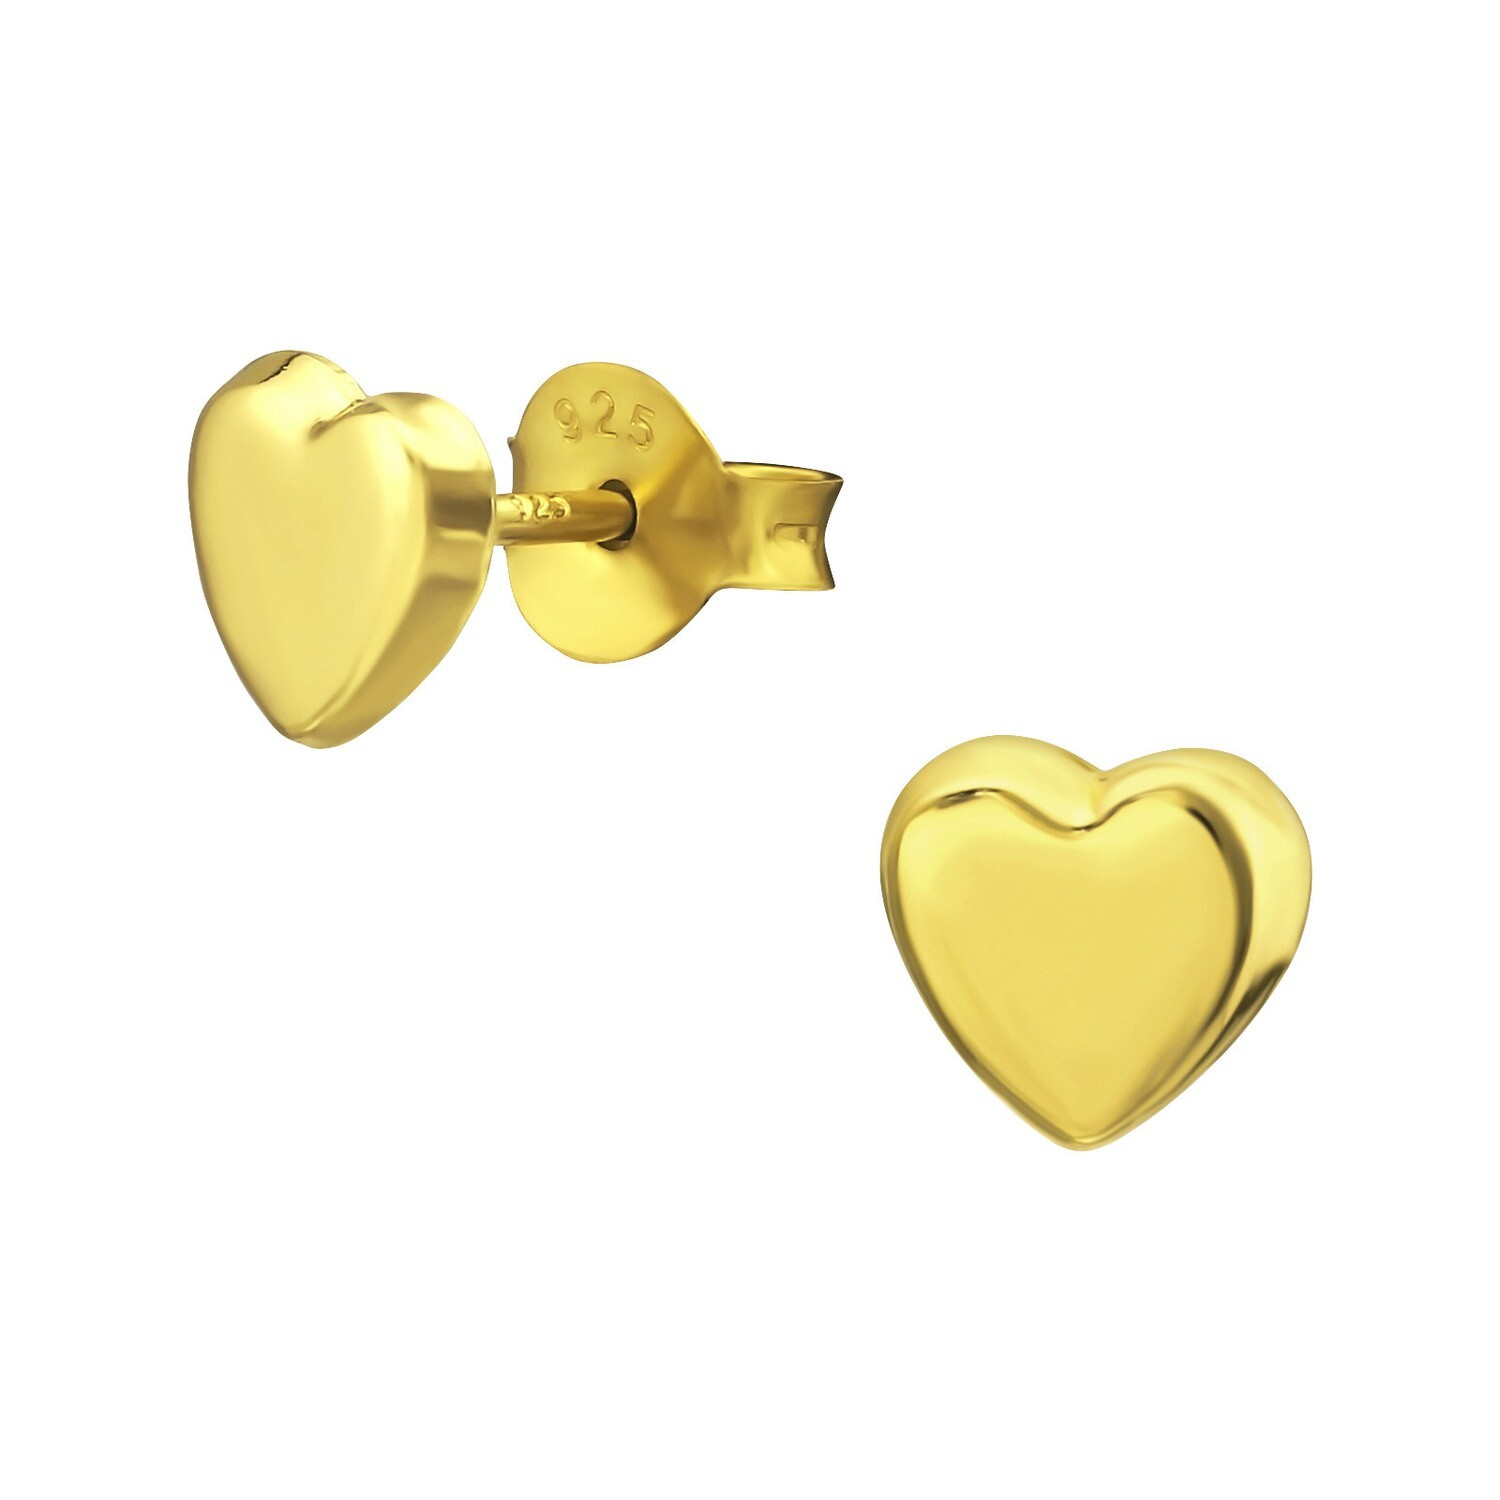 P40-25 Heart Posts - Gold Plated Sterling Silver